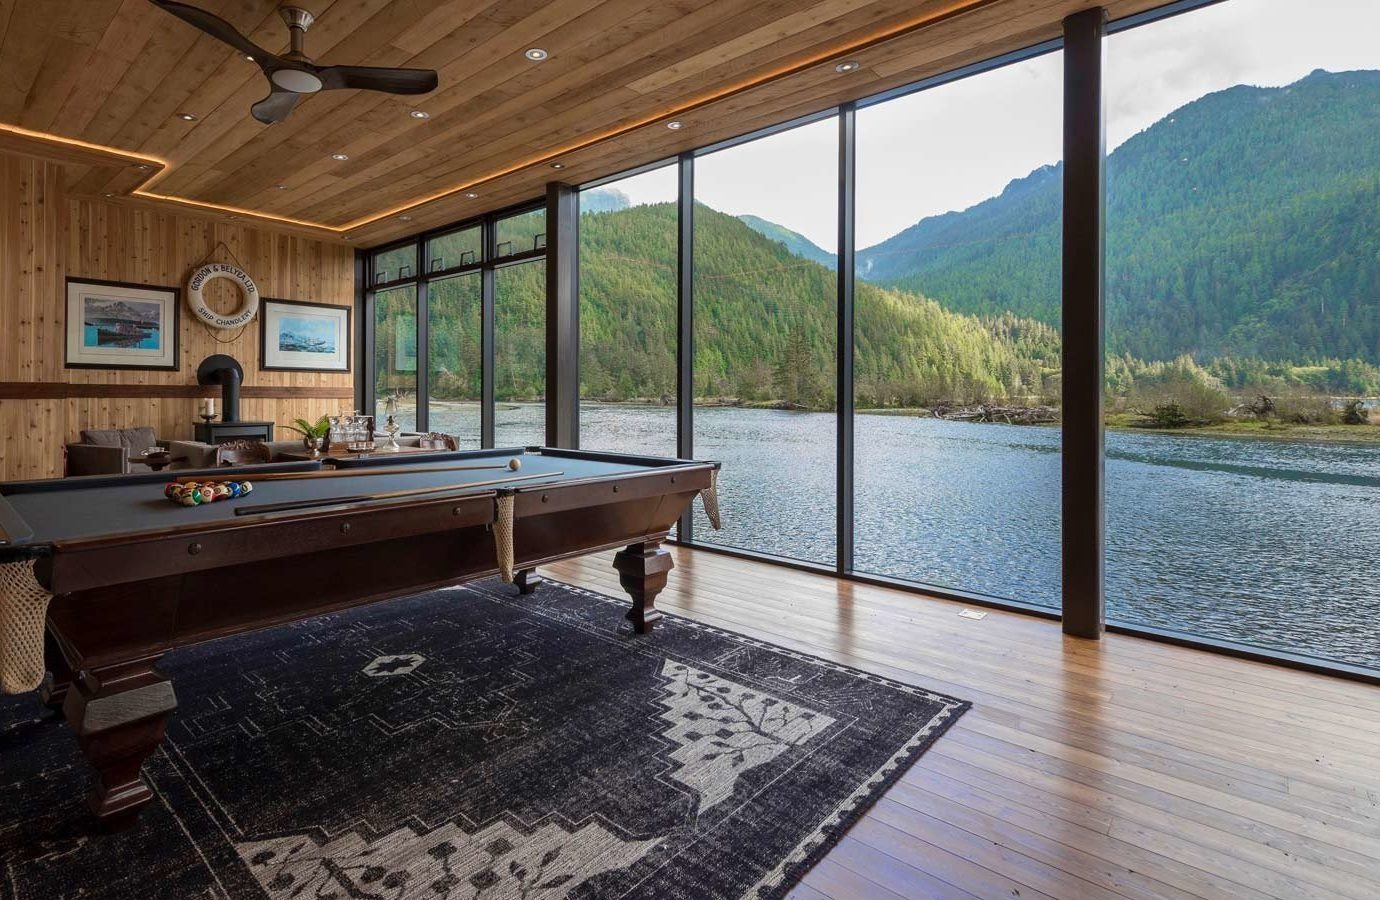 Glamping Luxury Travel Trip Ideas water floor building indoor Architecture real estate ceiling house home interior design wood window estate overlooking flooring daylighting porch Deck furniture Island